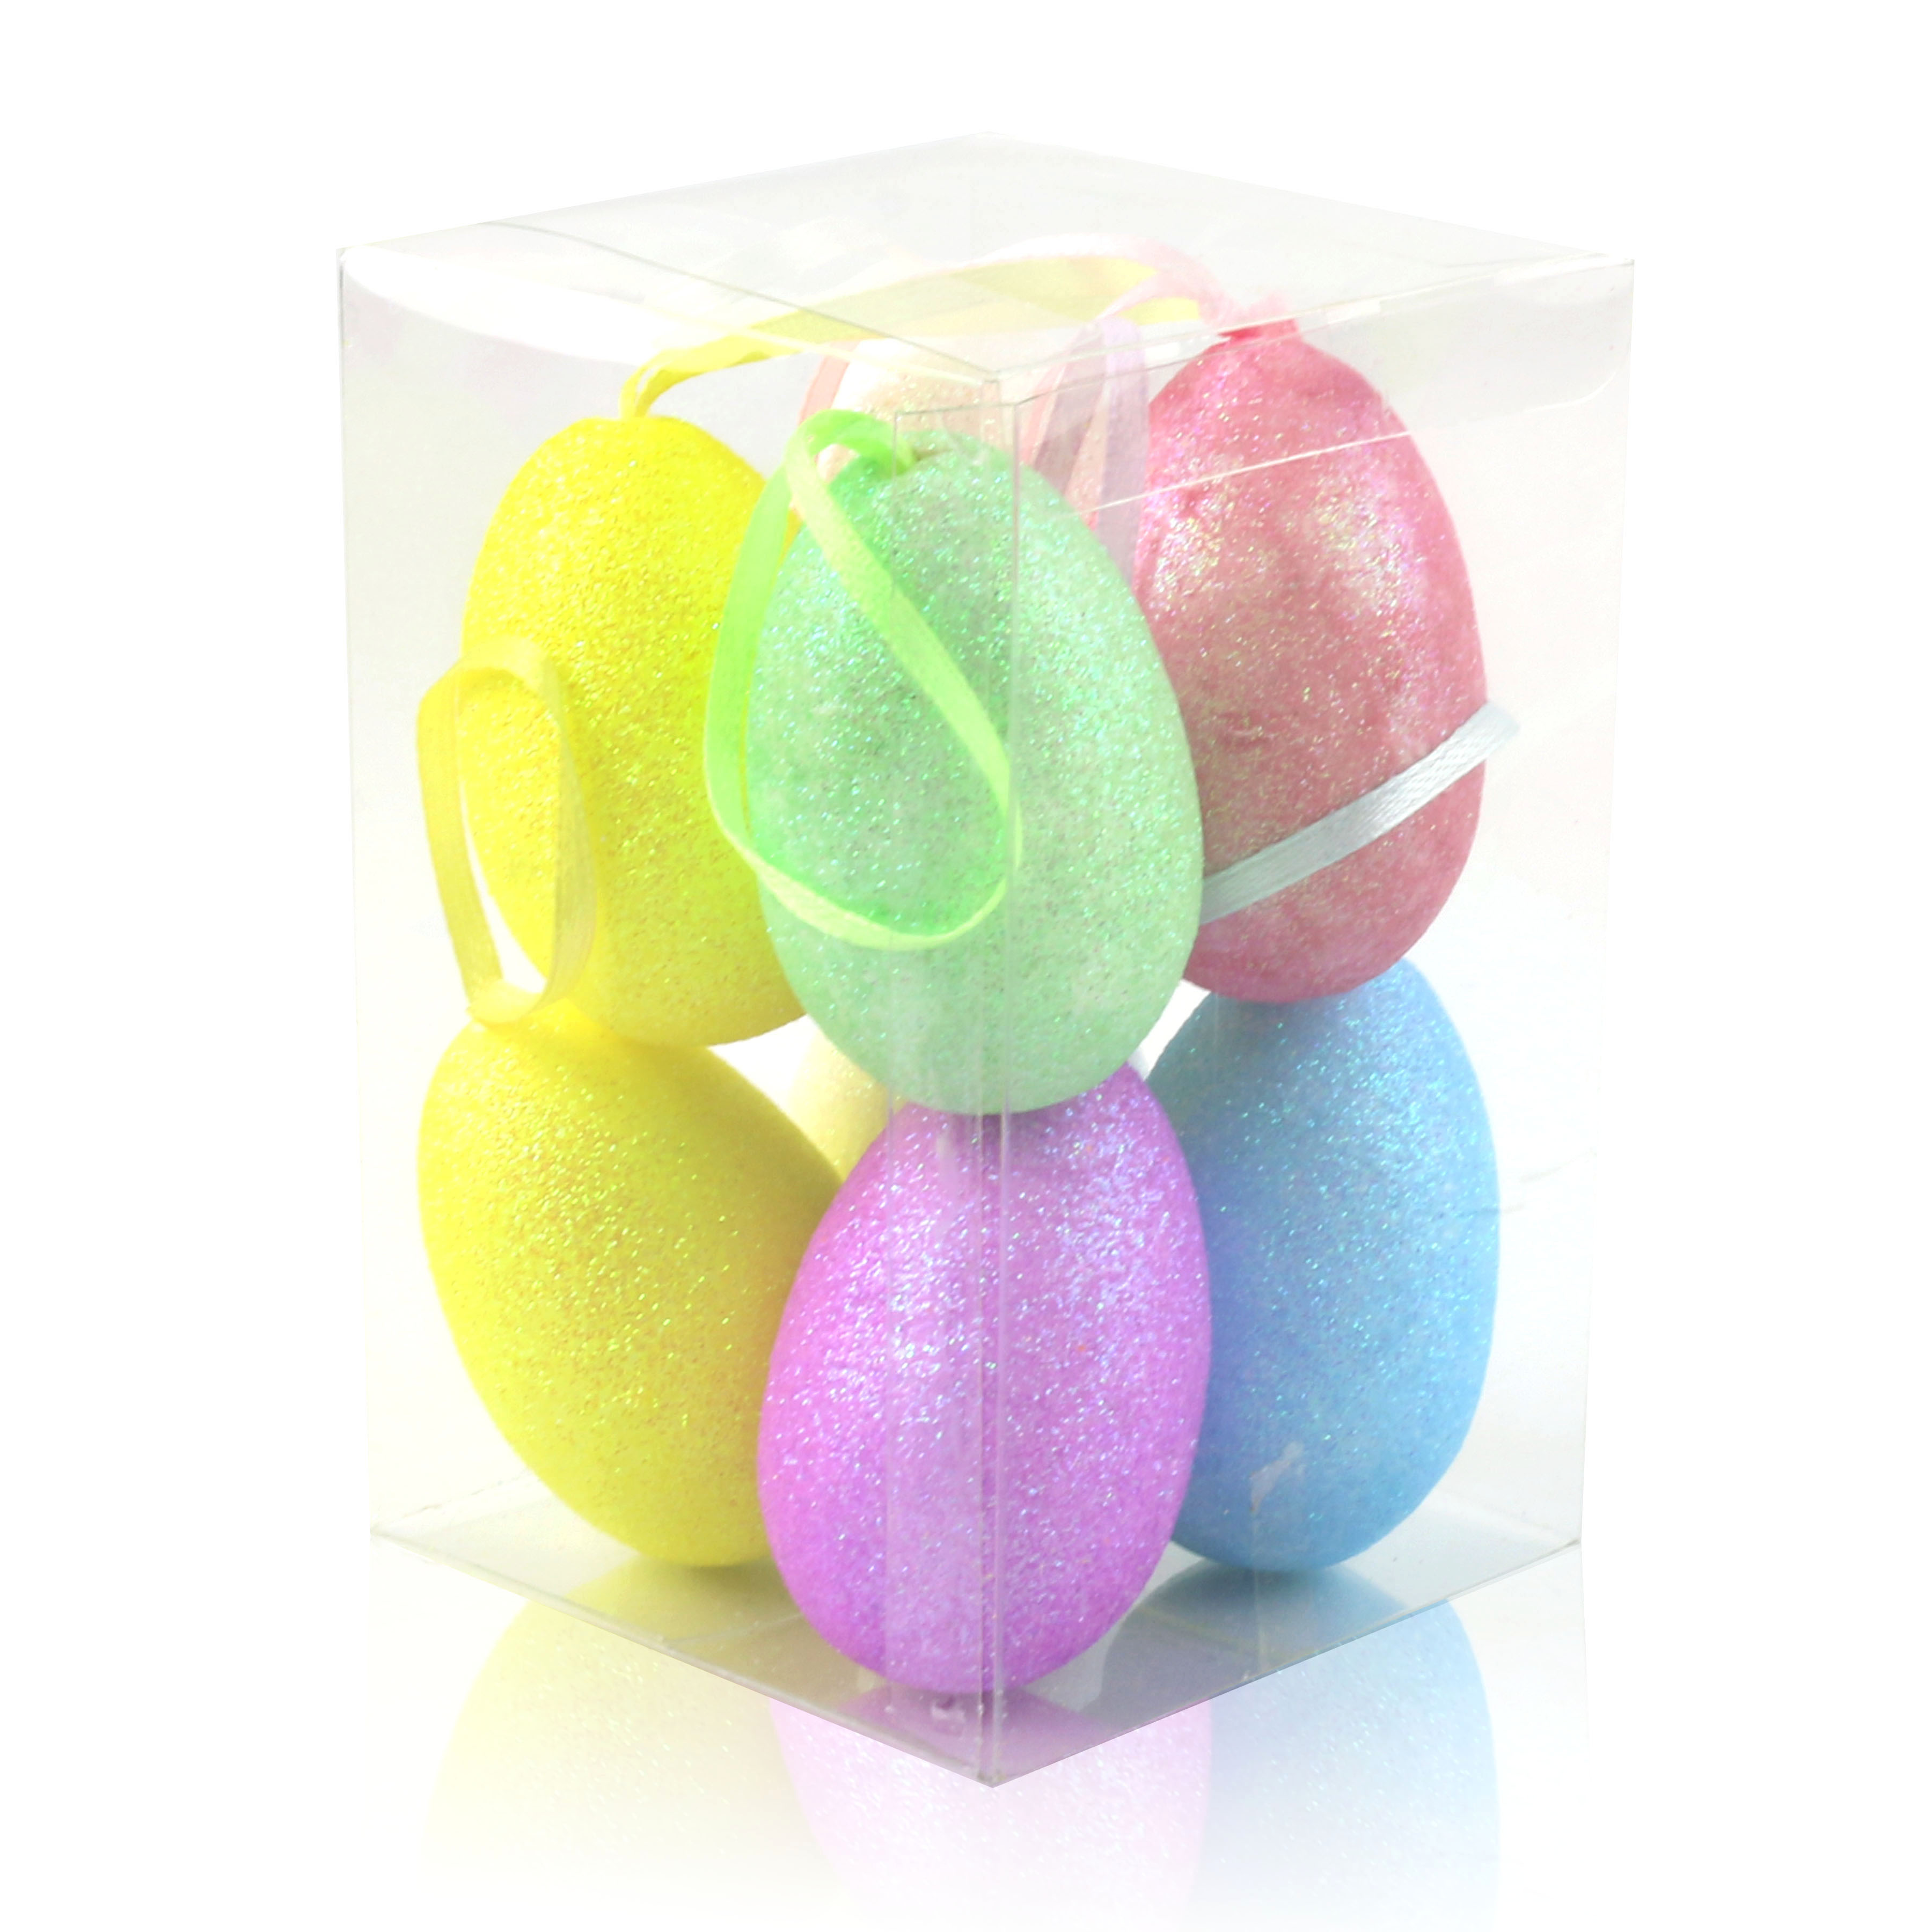 Bulk Pack Easter Eggs In Assorted Colors To Hide Charms Candy More Buy Clear Plastic Easter Egg Easter Egg Toys Large Easter Eggs Product On Alibaba Com